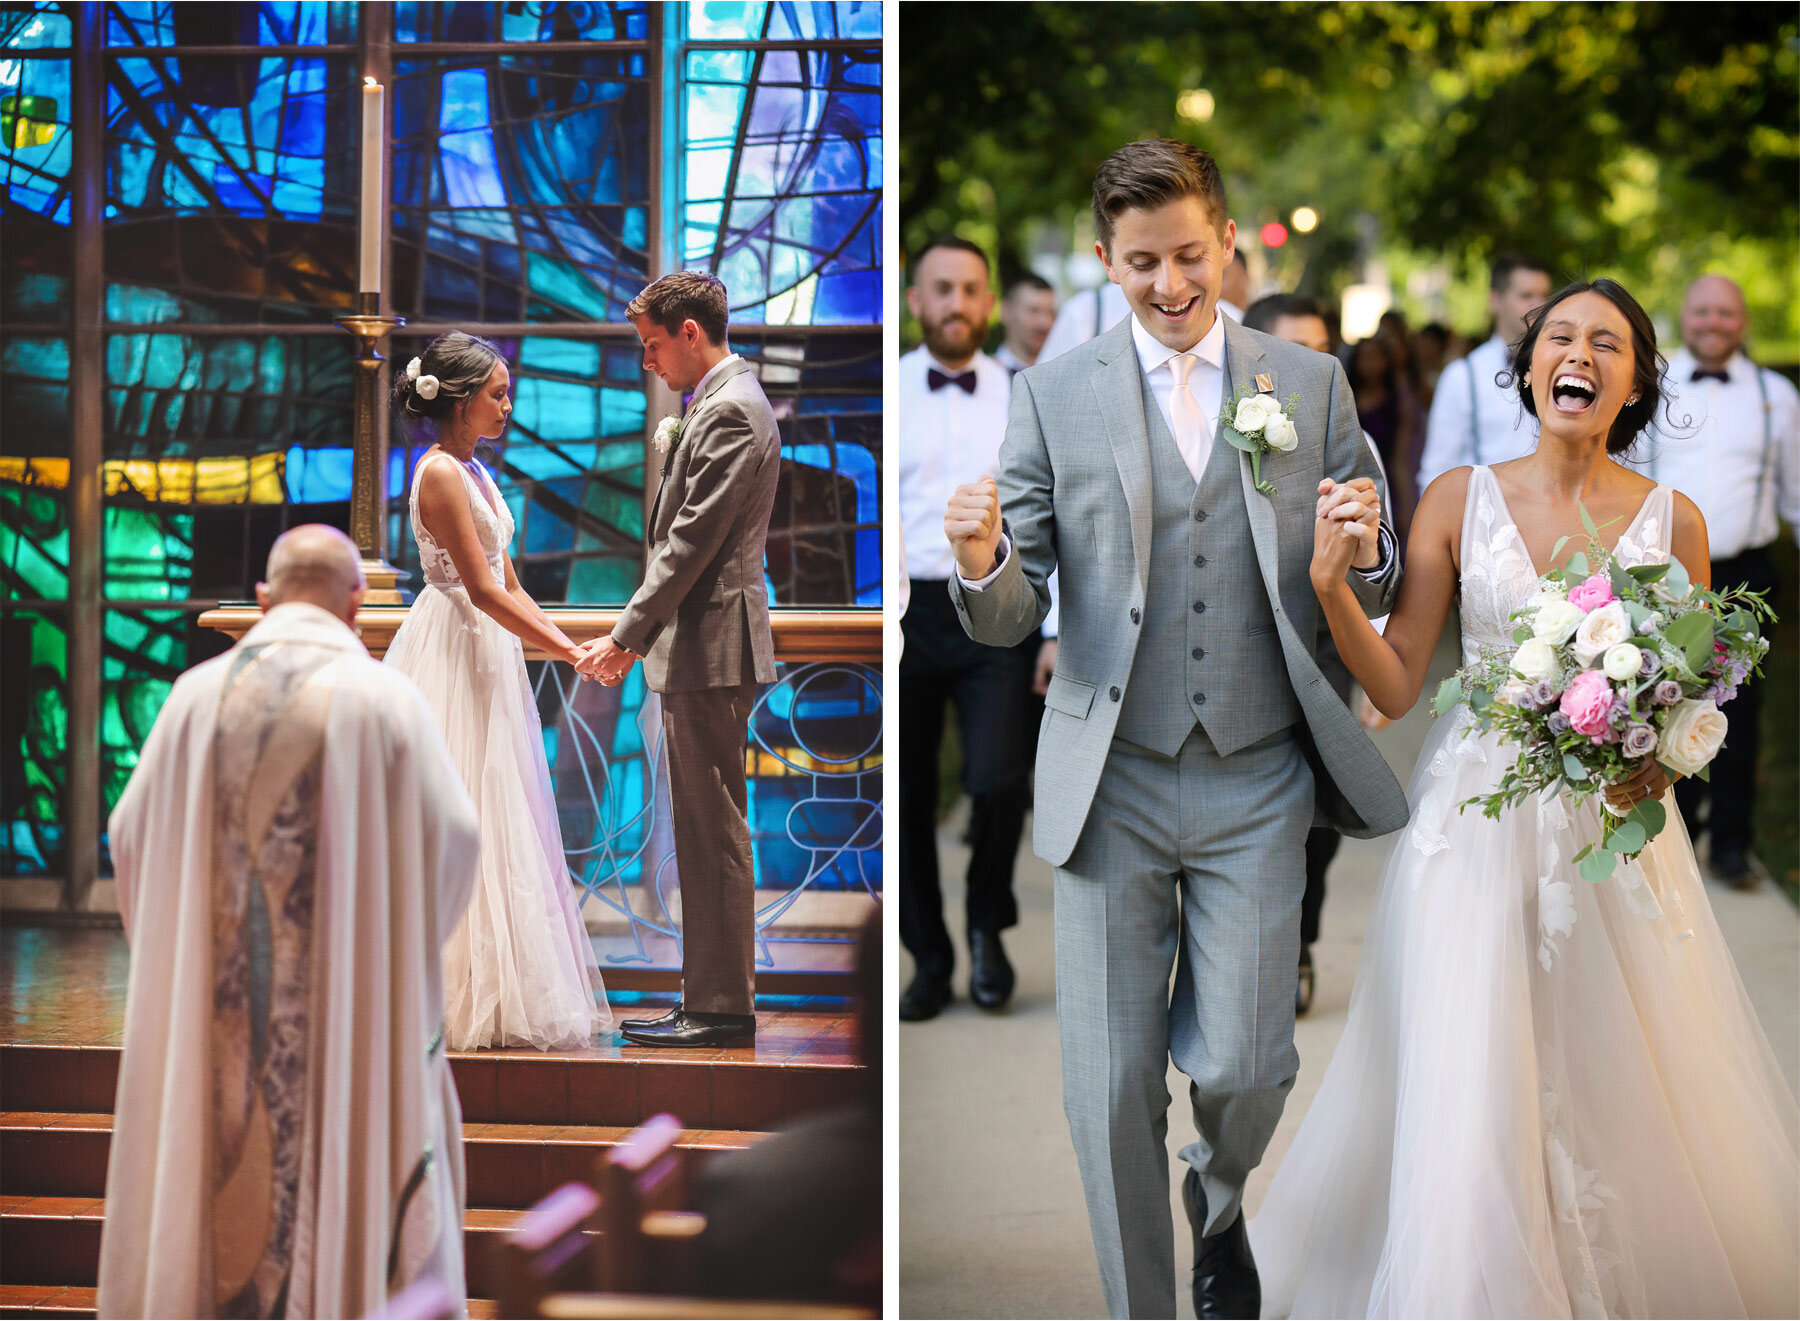 18-Wedding-by-Andrew-Vick-Photography-Chicago-Illinois-Alice-Millar-Chapel-Groom-Bride-Stained-Glass-Ceremony-Ashley-and-Nicholas.jpg